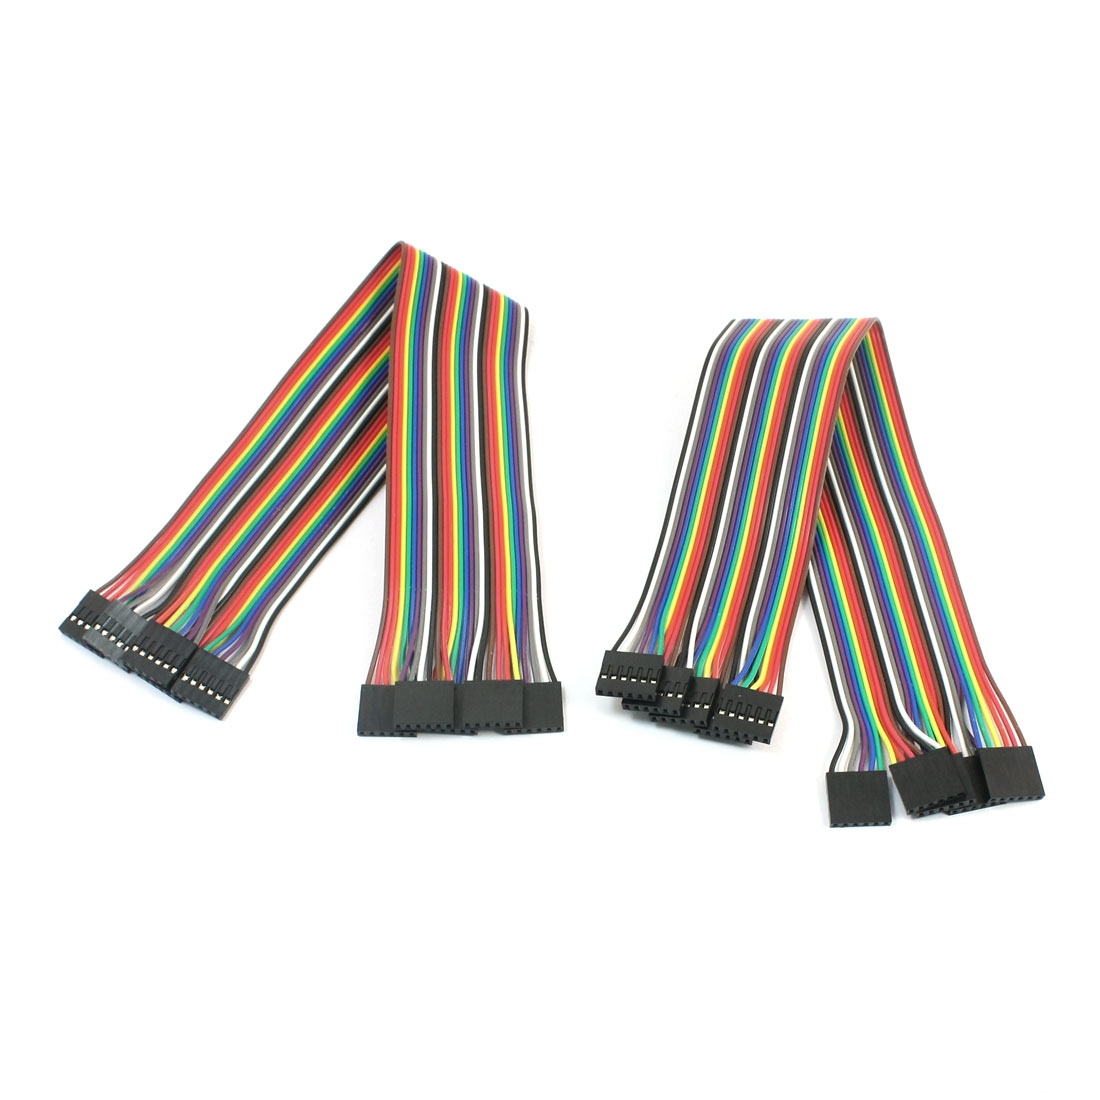 10pcs 6P-6P Female to Female Breadboard Connect Test Jumper Cable Wire 30cm